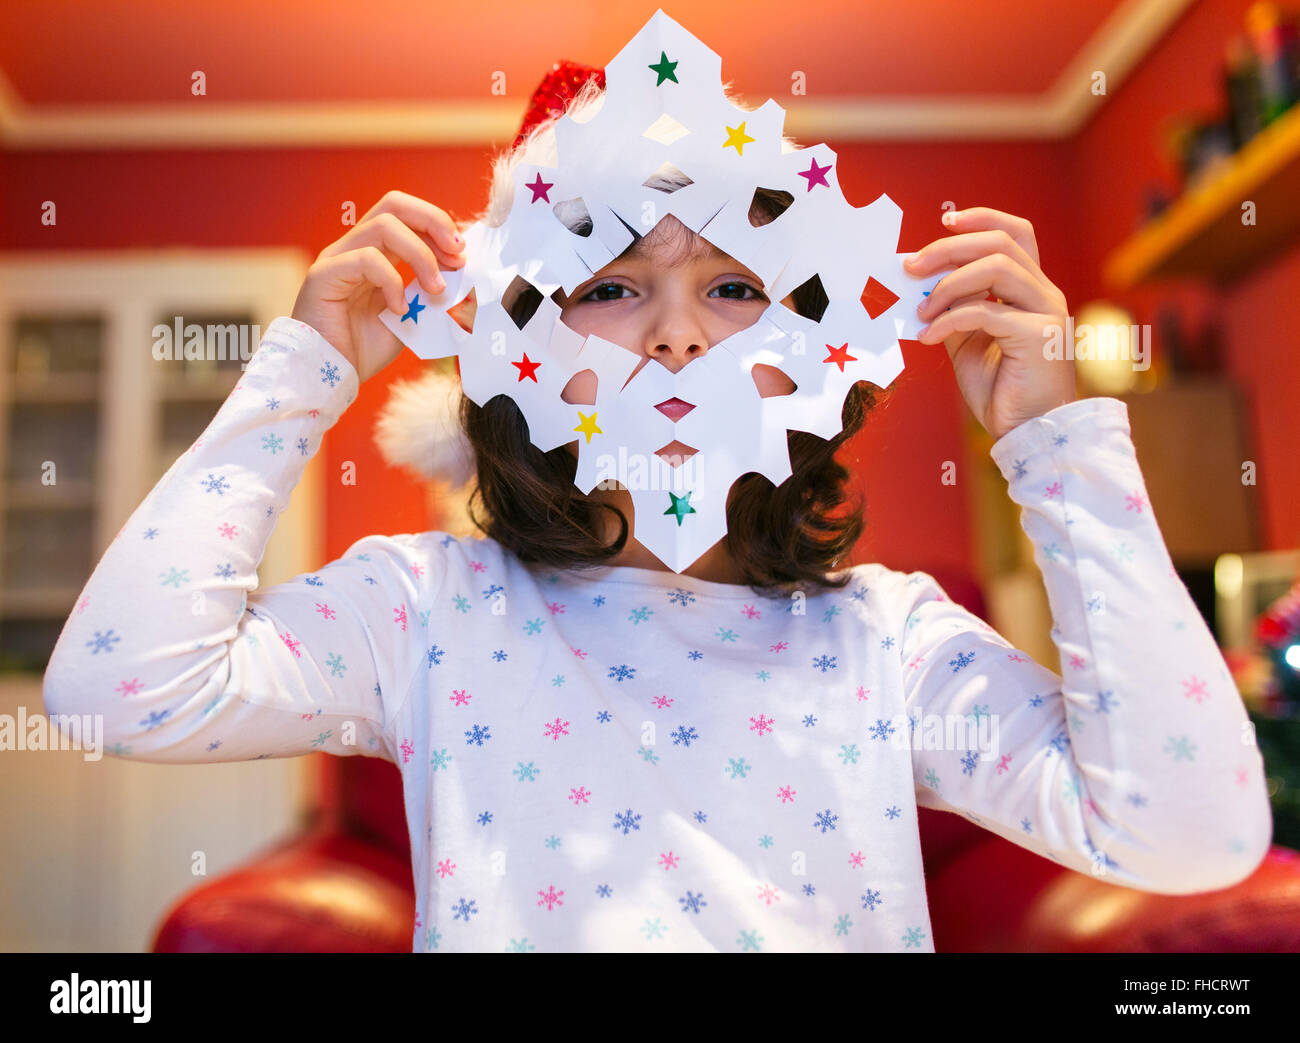 Little girl with tinkered Christmas decoration - Stock Image